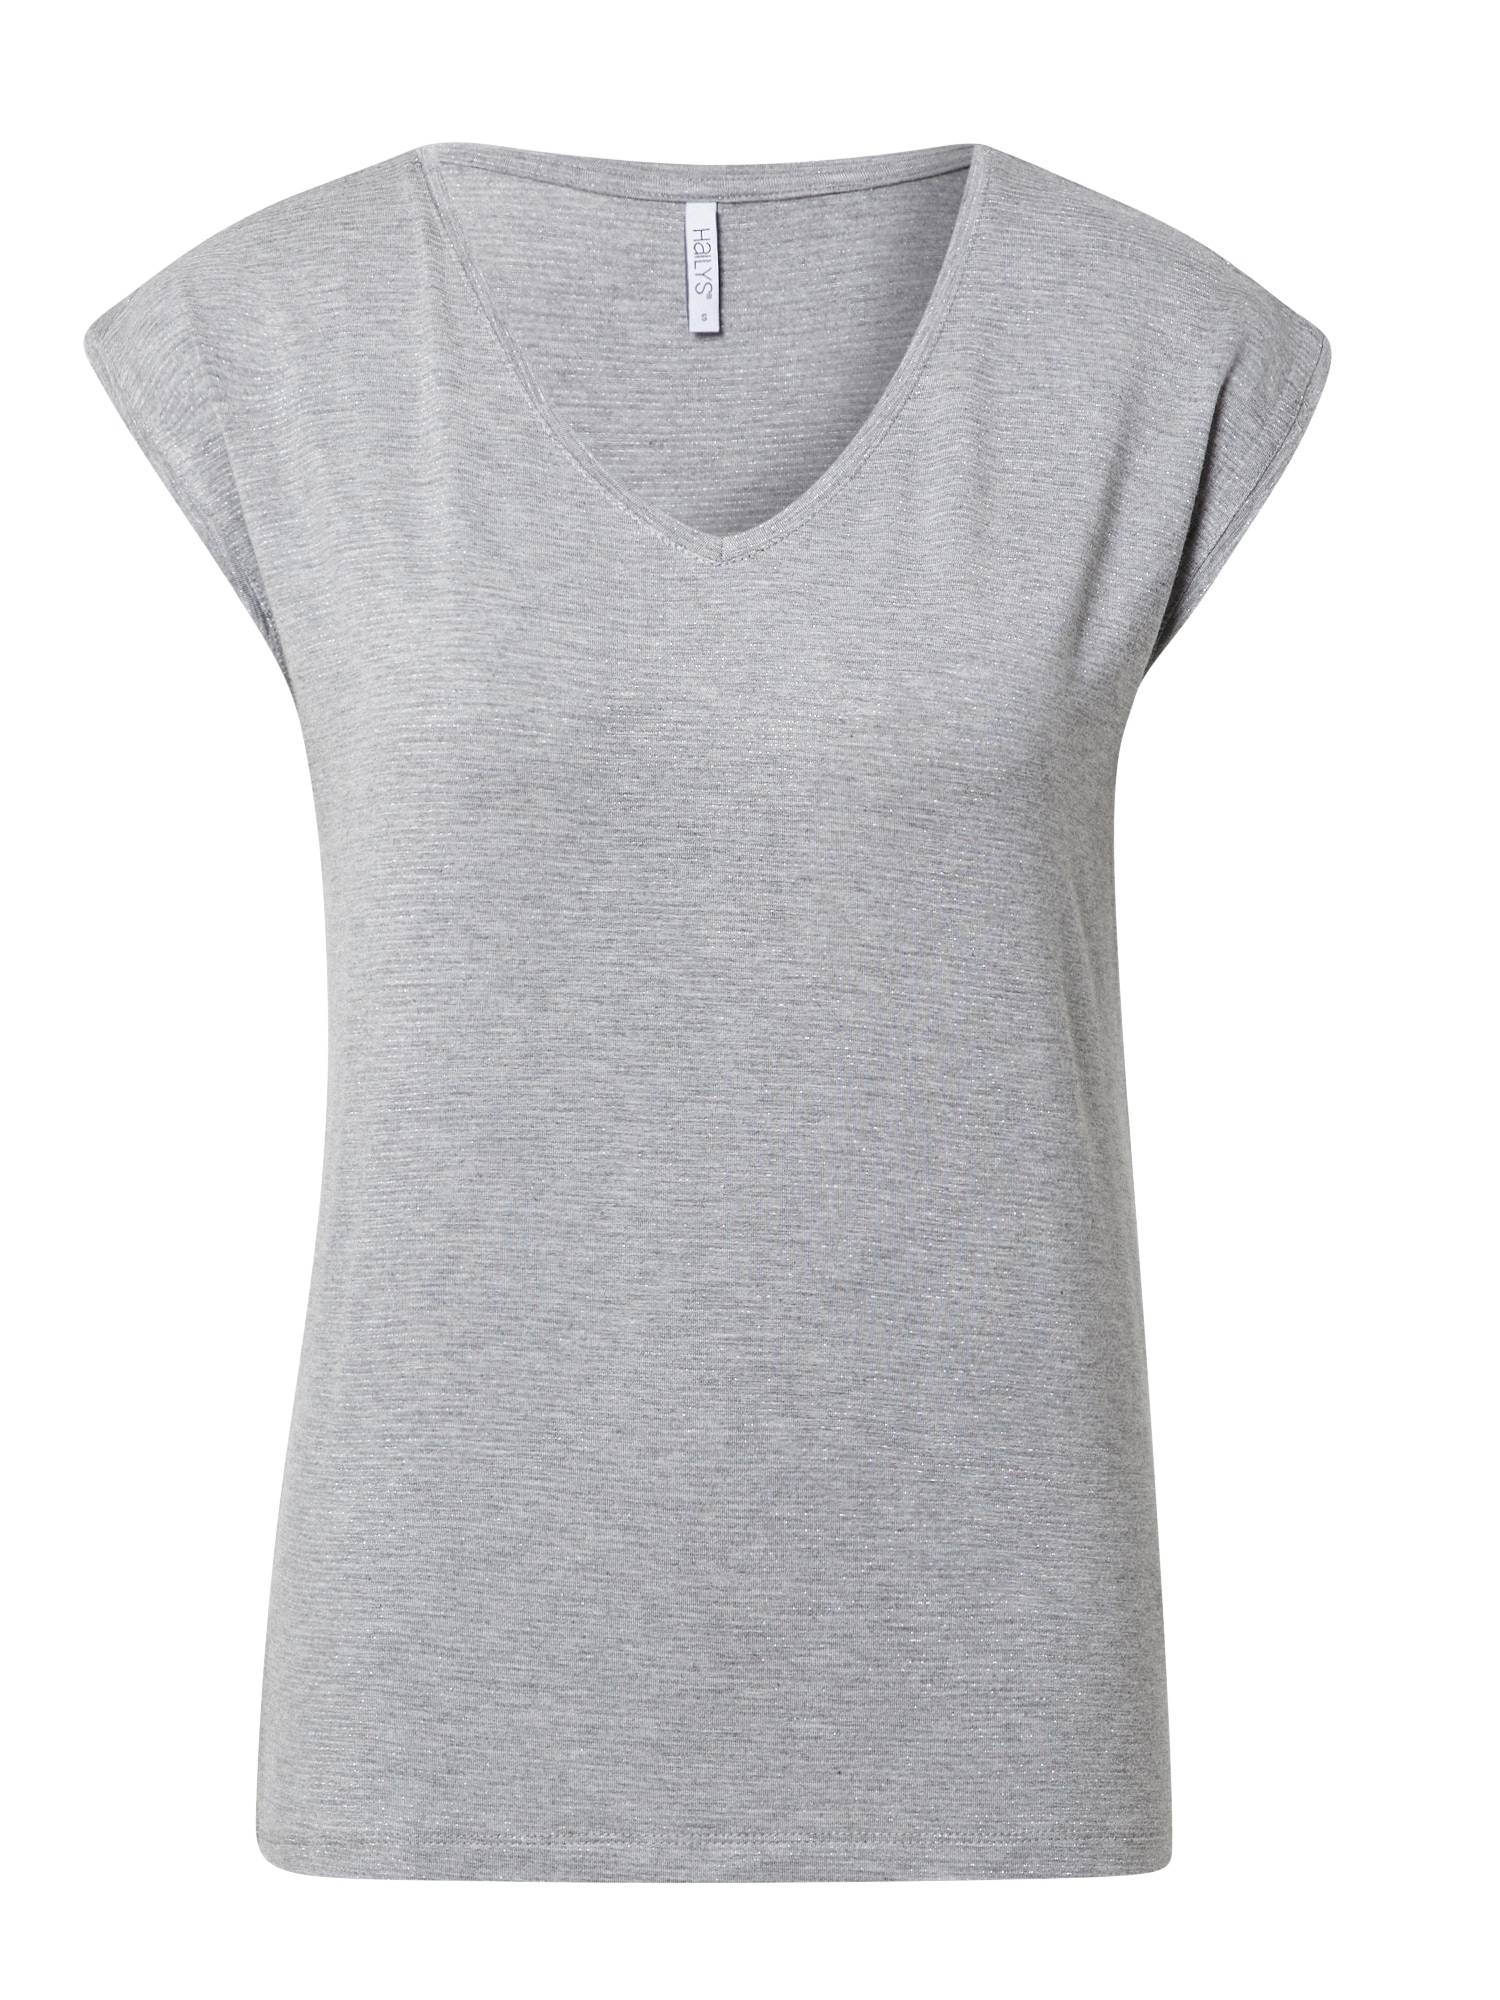 Hailys T-shirt 'TP Luxe'  - Gris - Taille: M - female